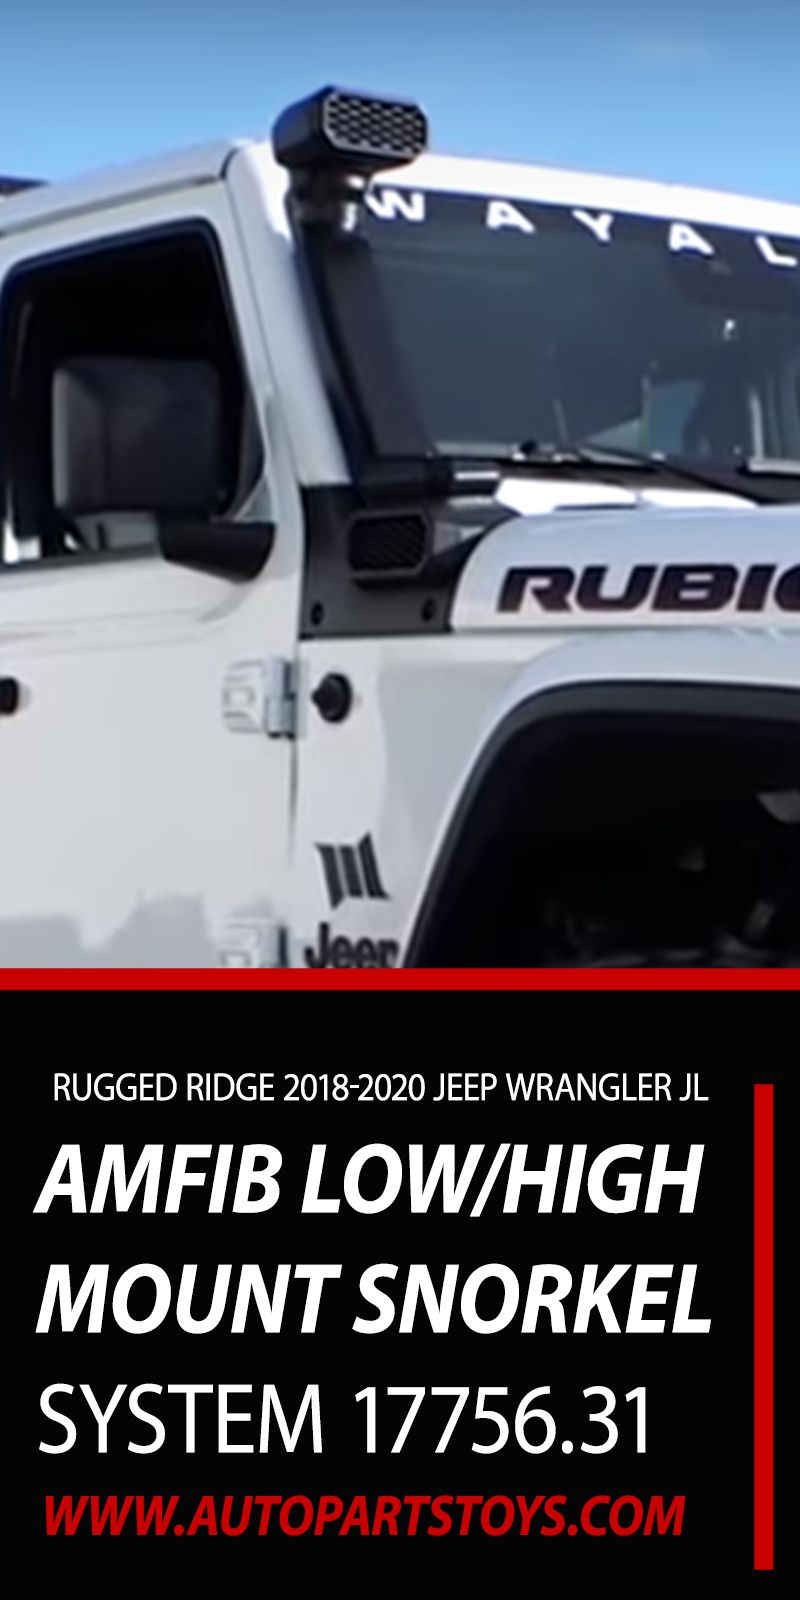 Rugged Ridge 20182020 Jeep Wrangler JL 20202021